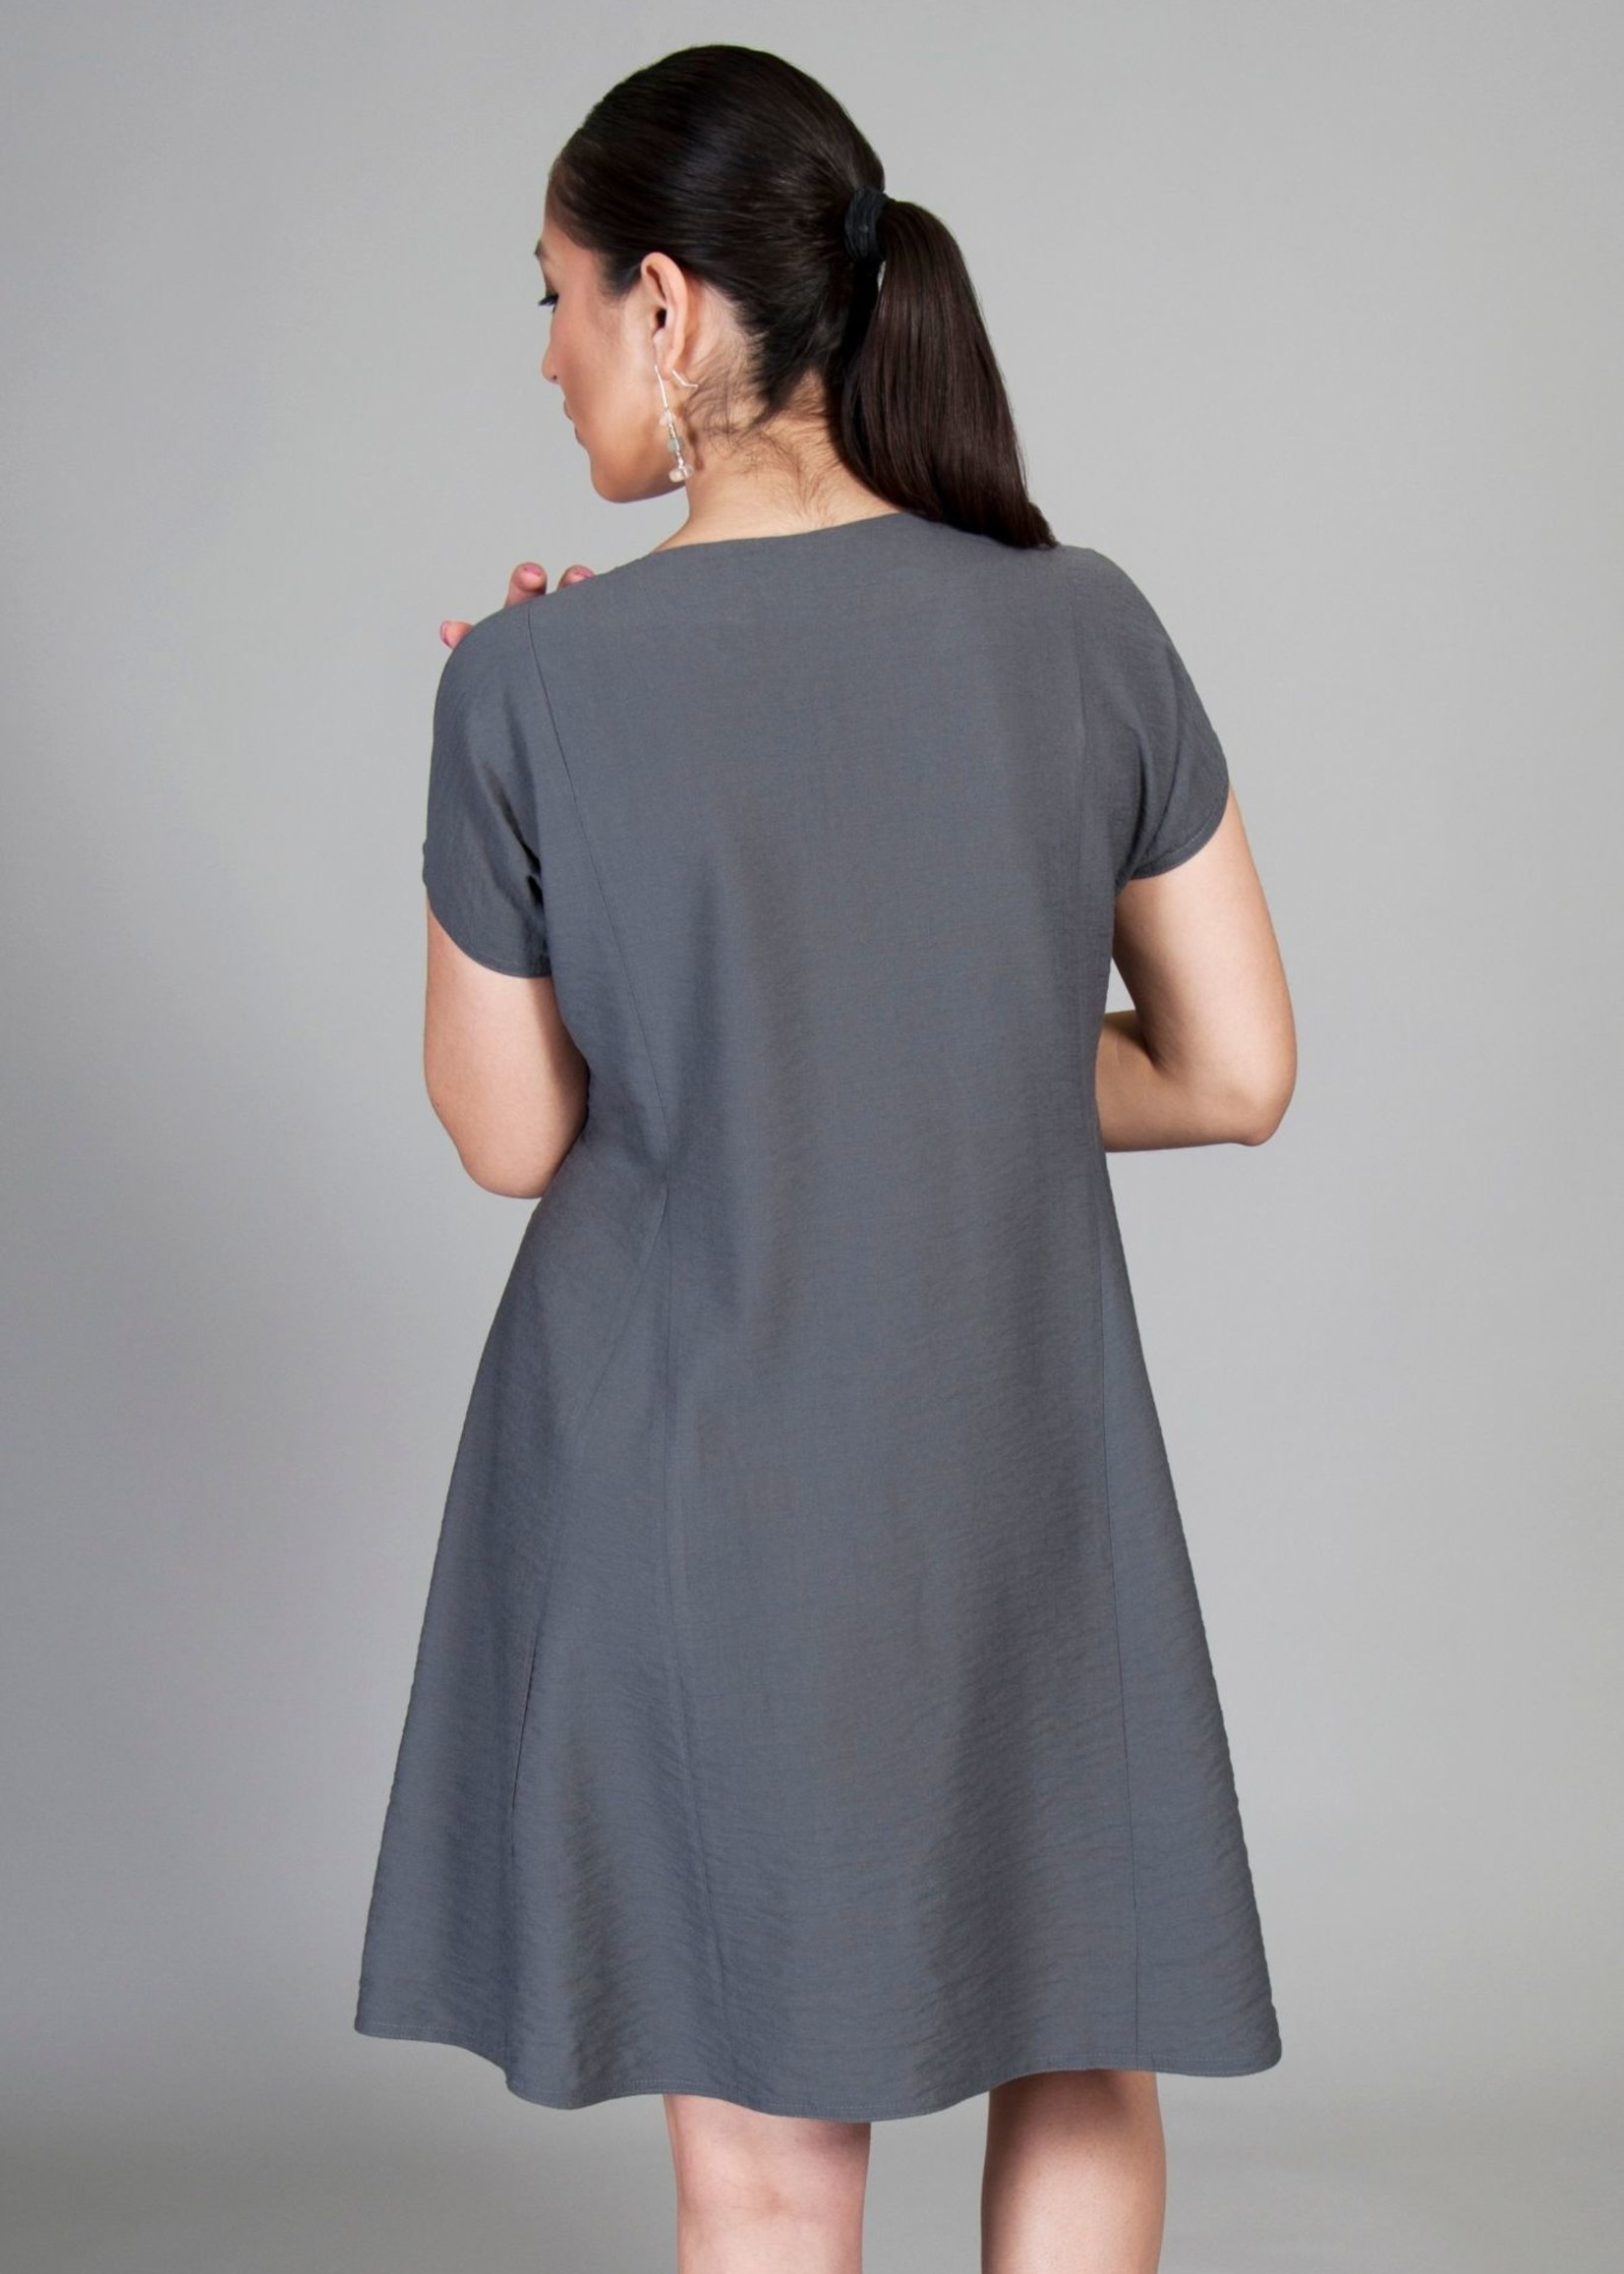 SARAH KUENYEFU CAP SLEEVE INSERT DRESS